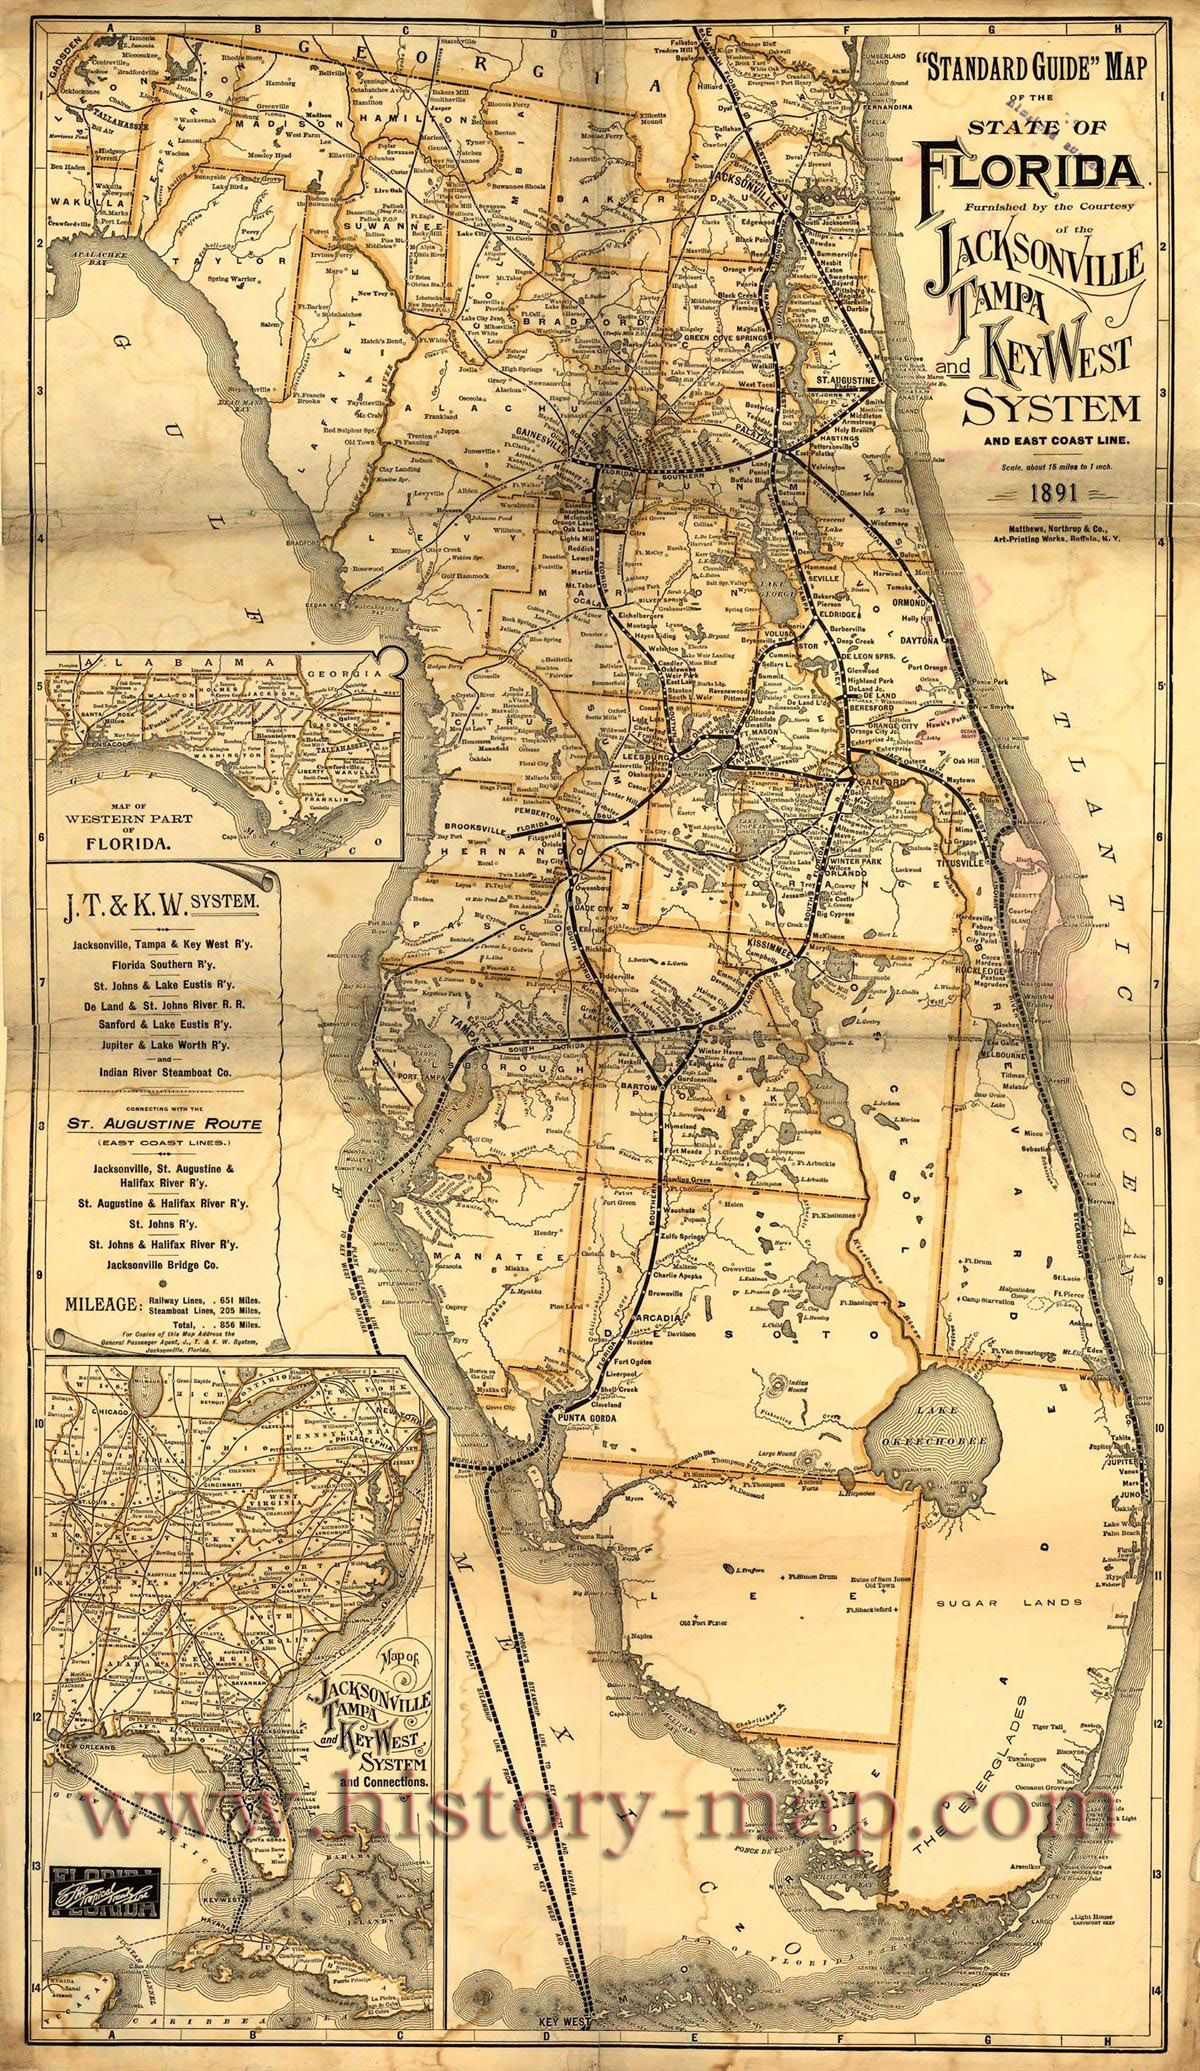 Old Florida Maps.Pin By Chris Blanar On Dog S Breakfast In 2019 Florida Vintage